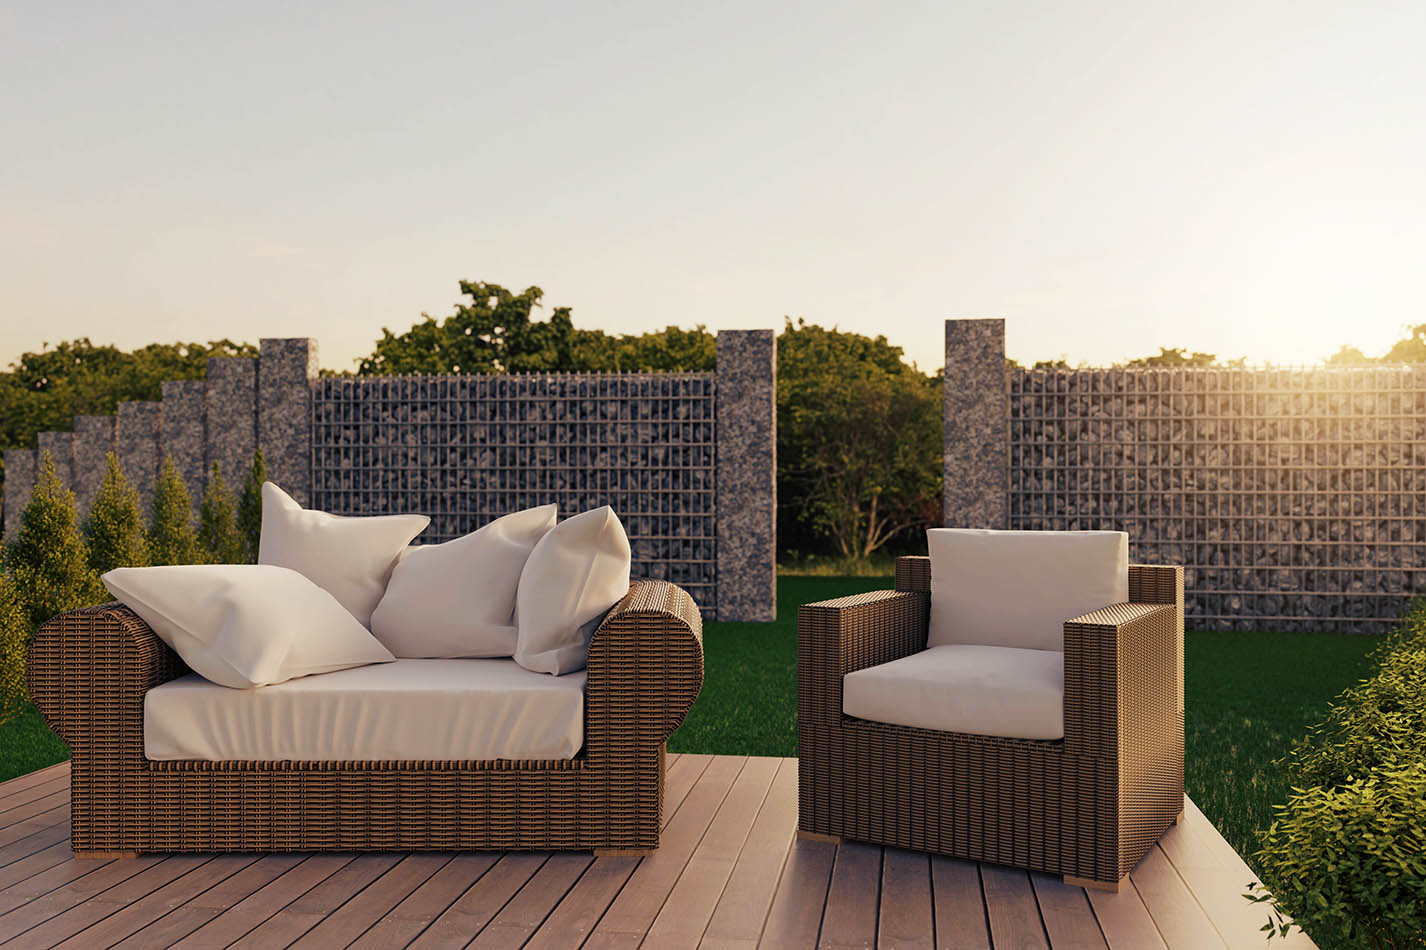 3d rendering of rattan garden furniture on wooden patio at garde